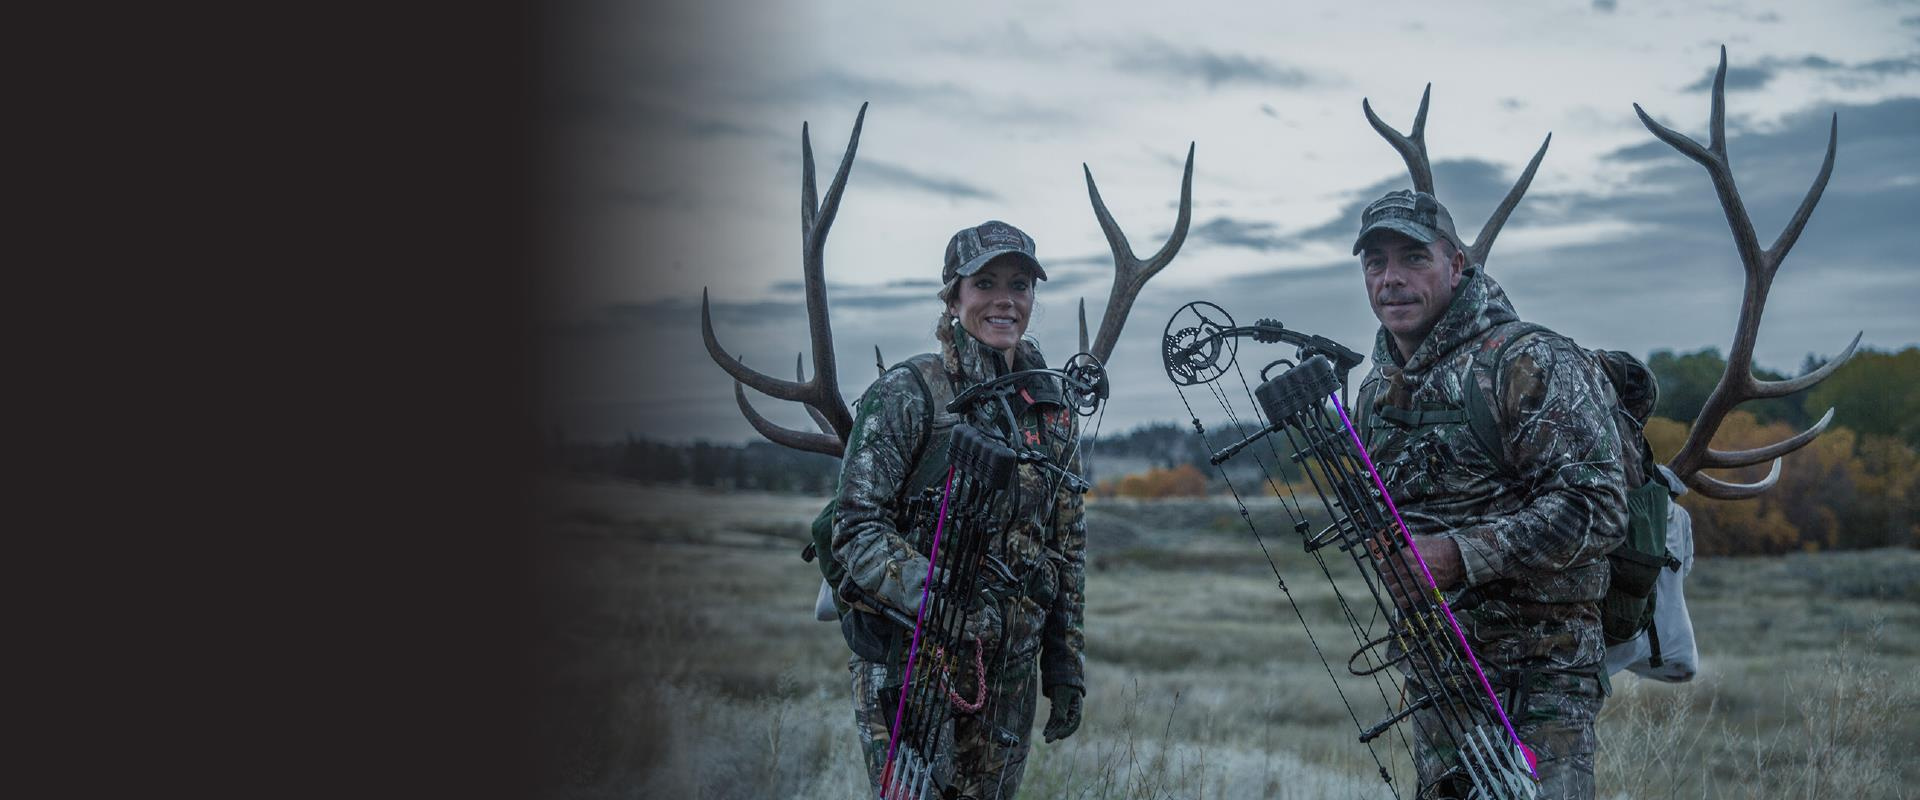 Raising Awarness for Breast Cancer Pink Arrow Wrap Raised Hunting